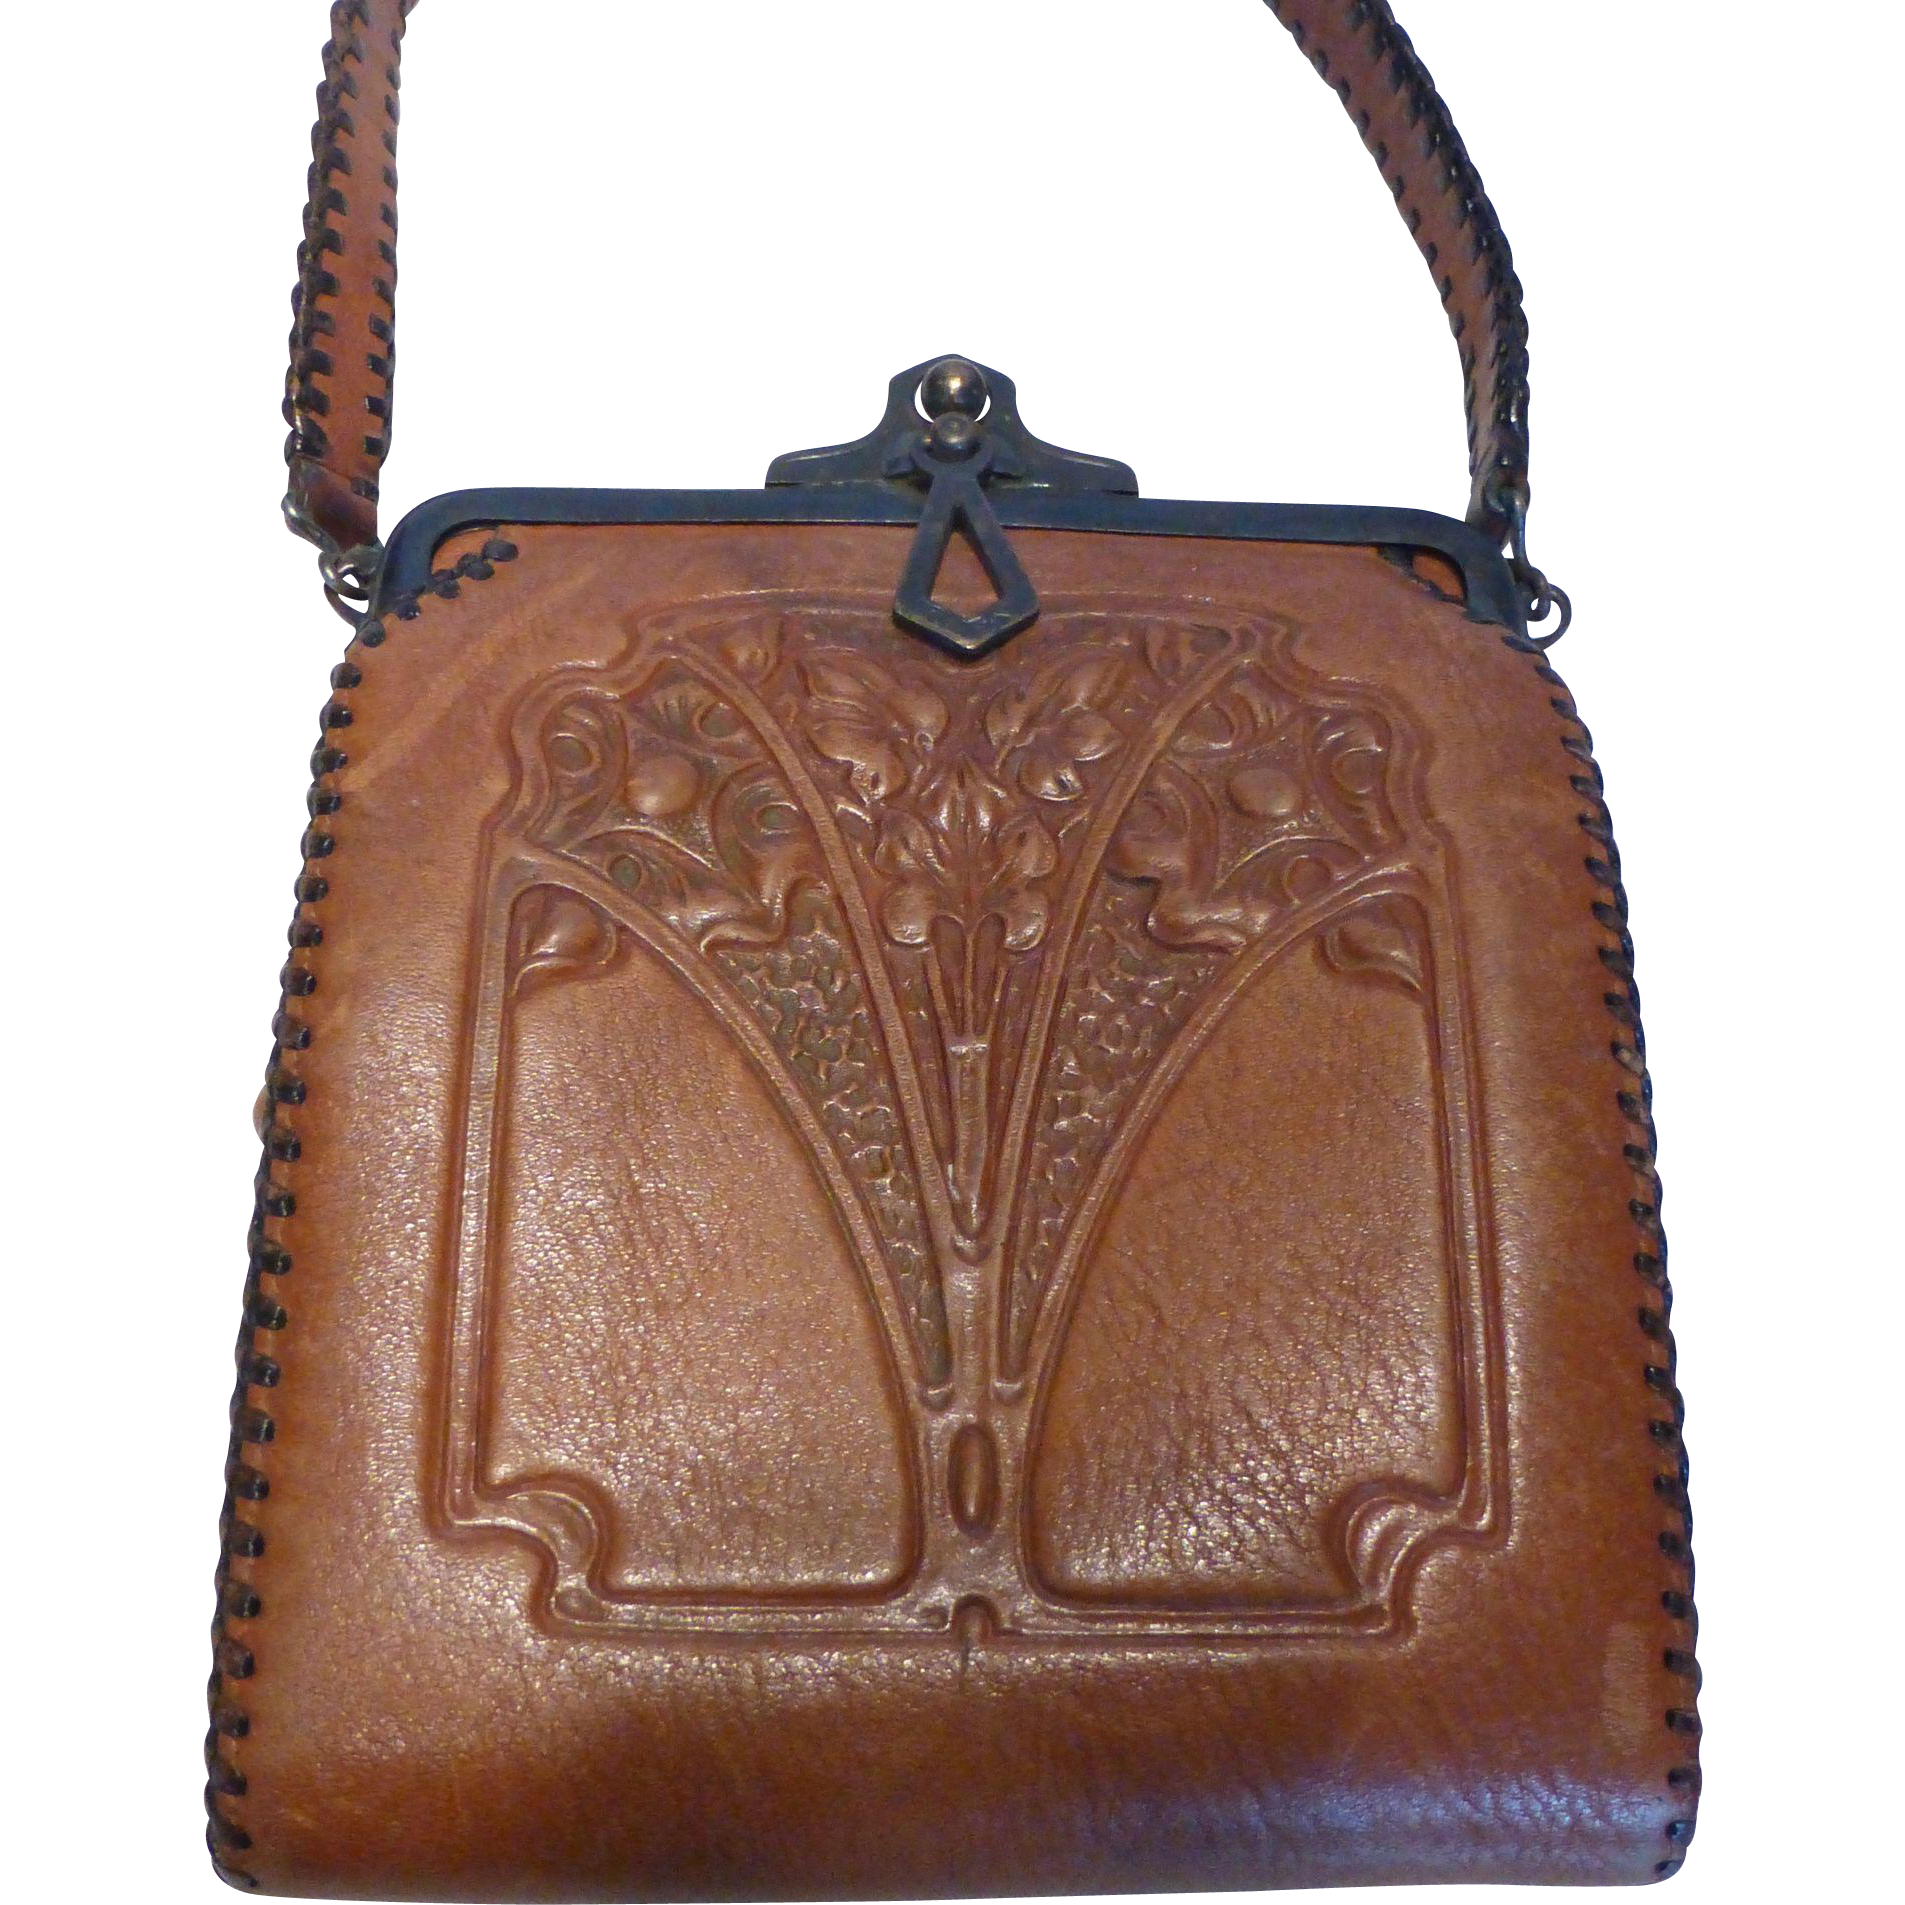 1920 S Arts Amp Crafts Embossed Leather Purse Handbag By